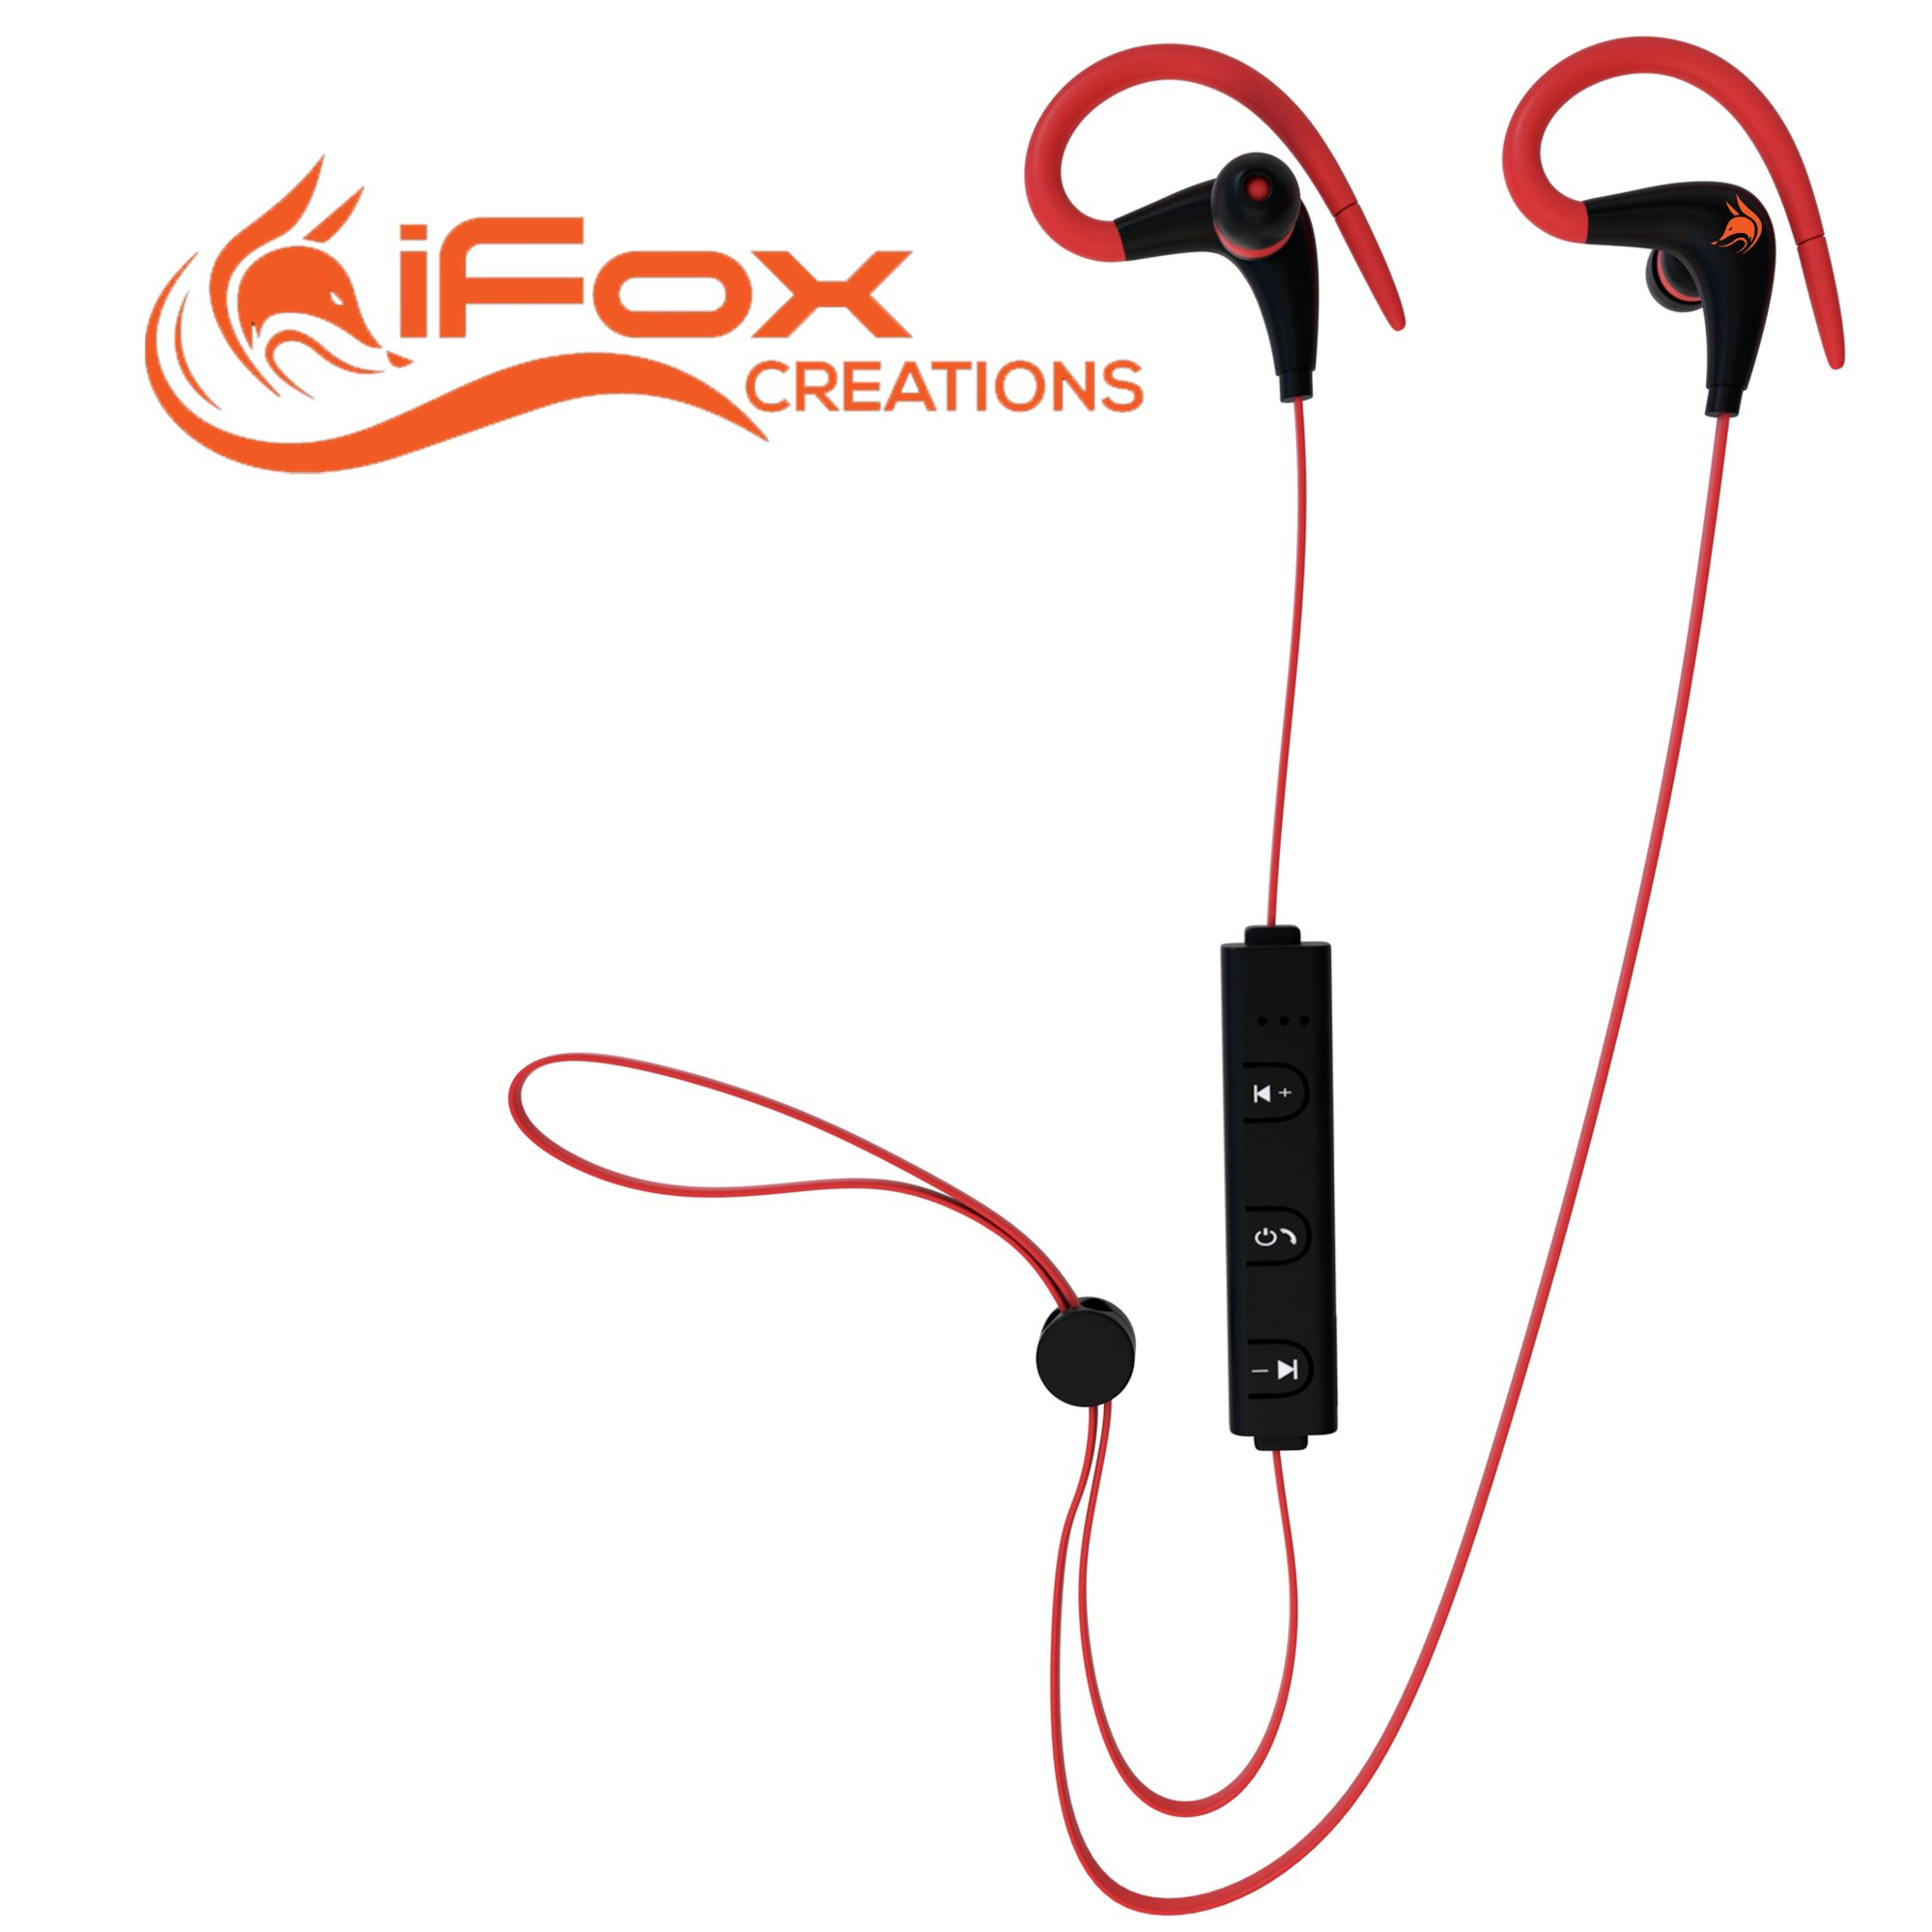 iFox iFE3 Bluetooth Sports Earphones with Built-in Mic for iPhone, iPad, iPod, Android Smartphones, Tablets, Computers, MP3 Players - Sweatproof Wireless Comfort Fit Design with Volume Control